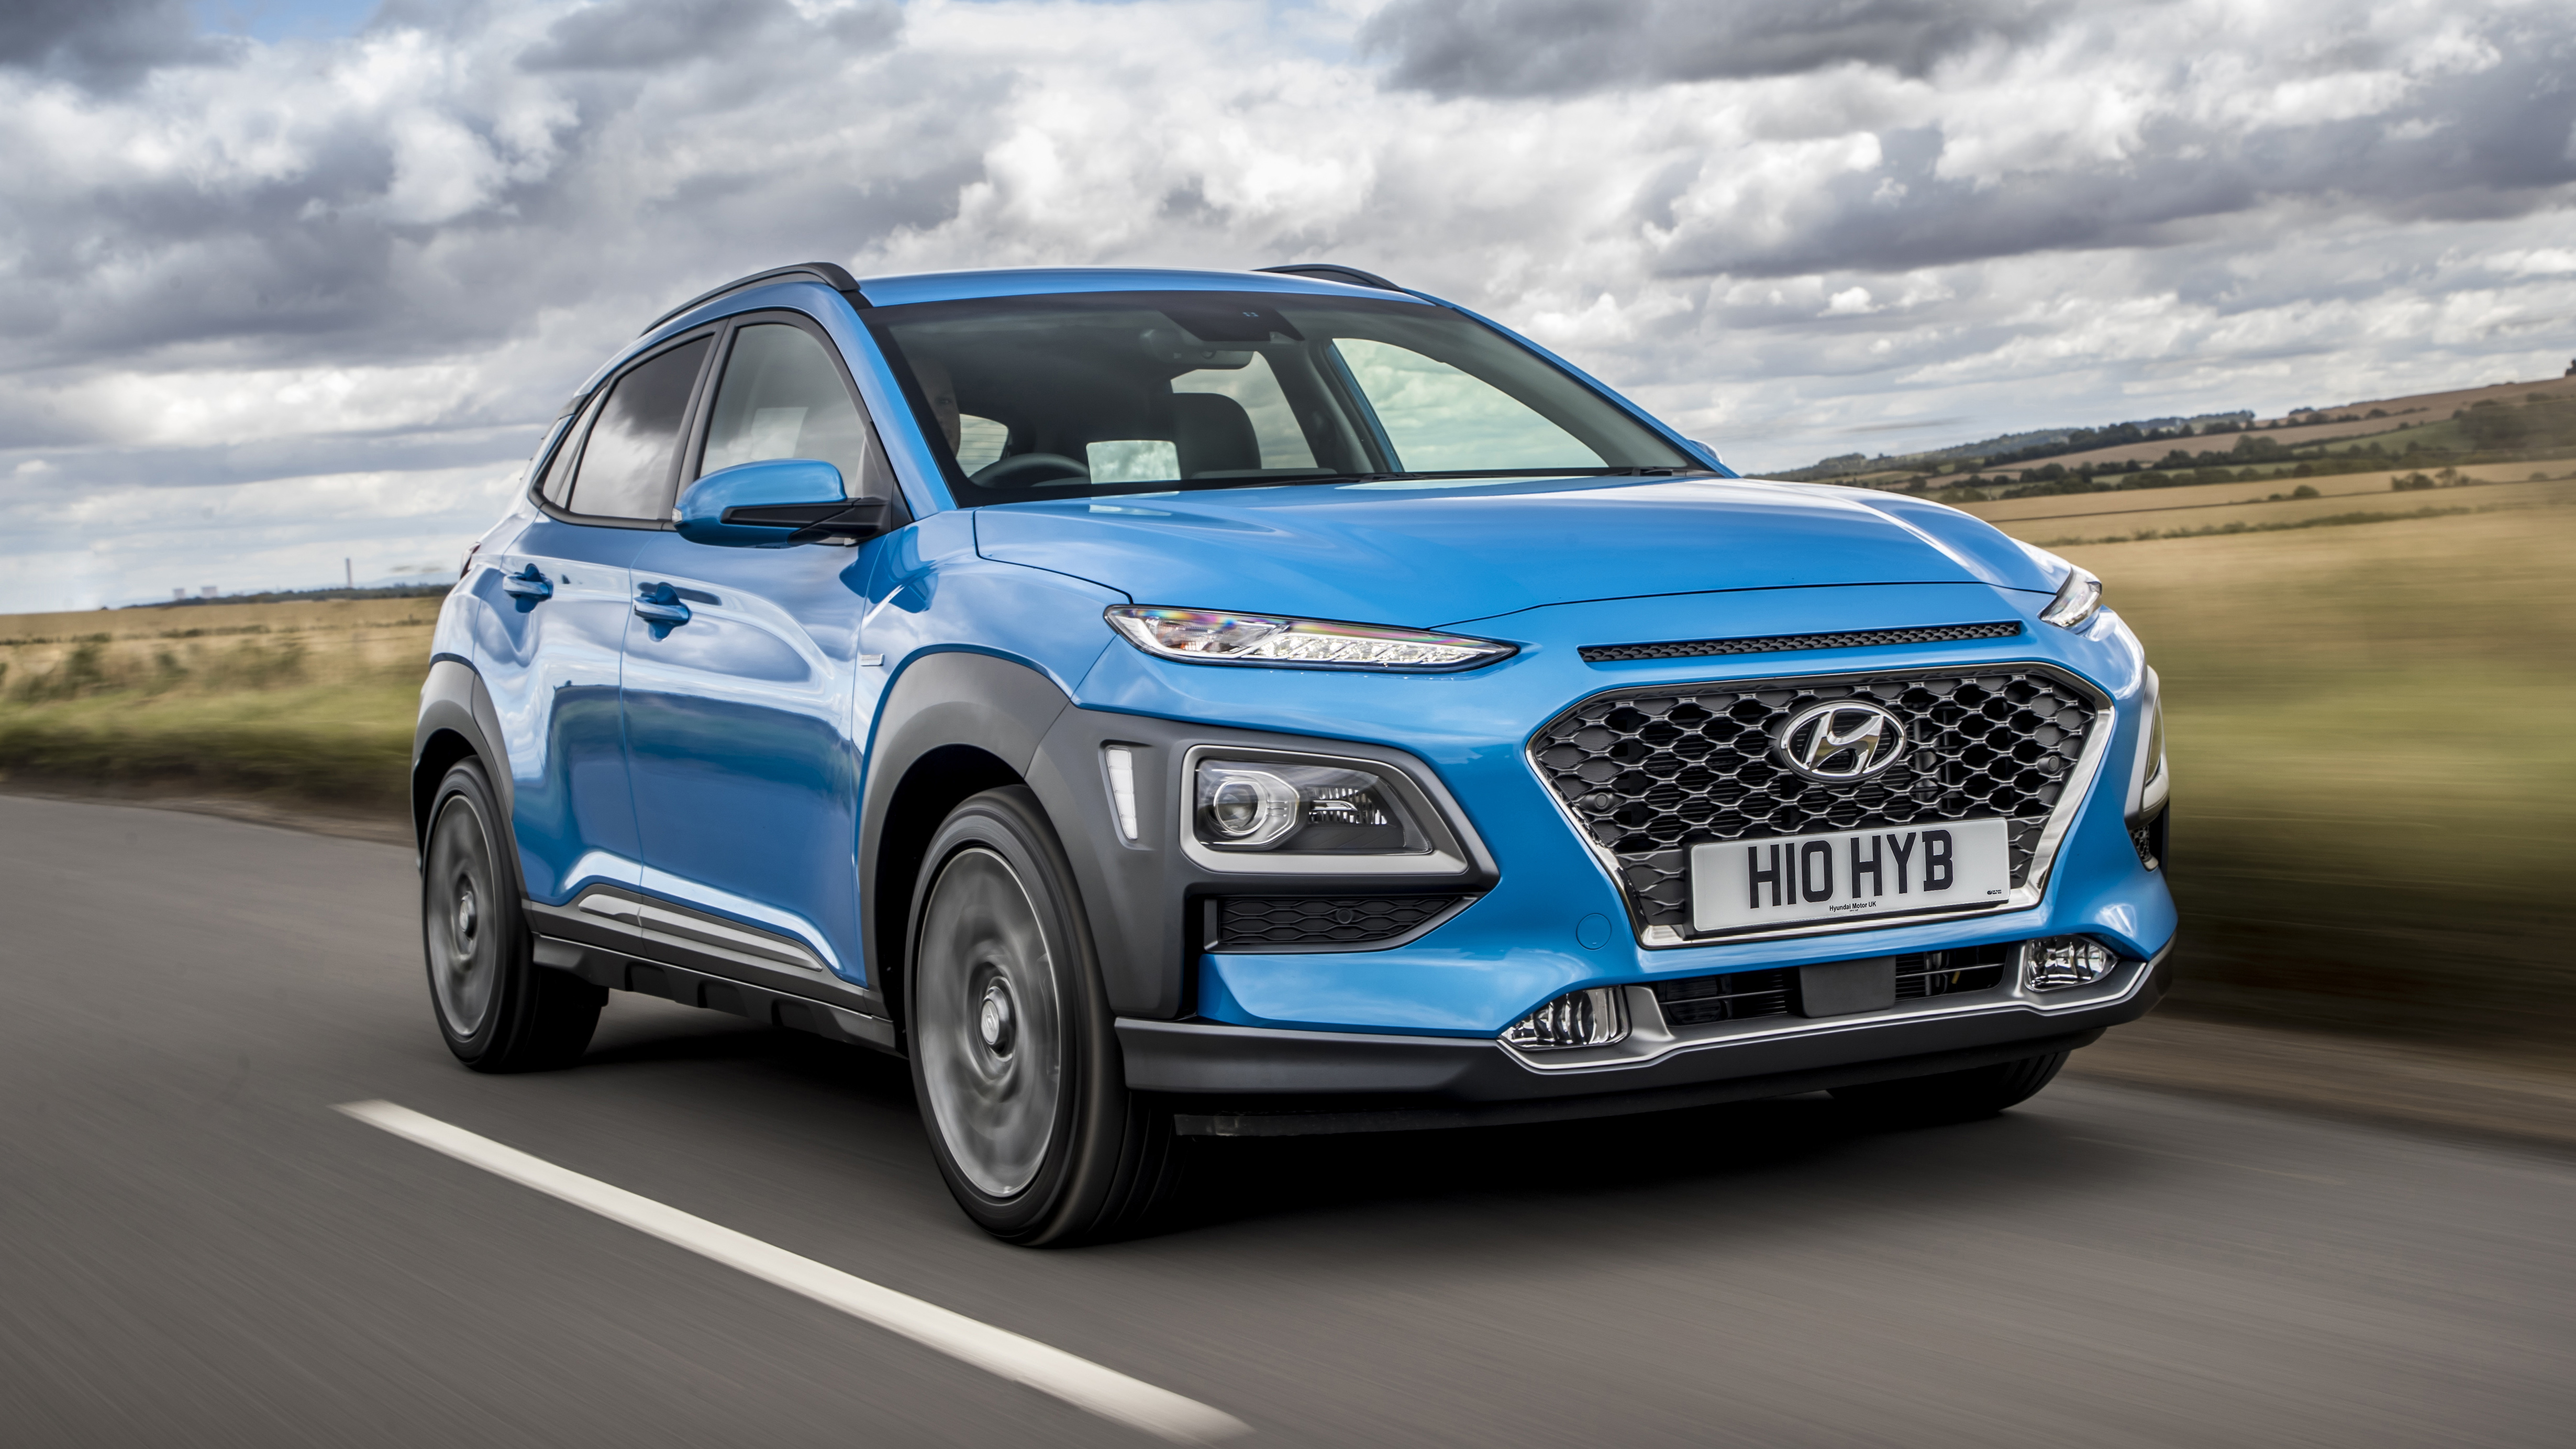 Hyundai Kona Hybrid Review Crossover Tested On Uk Roads Top Gear